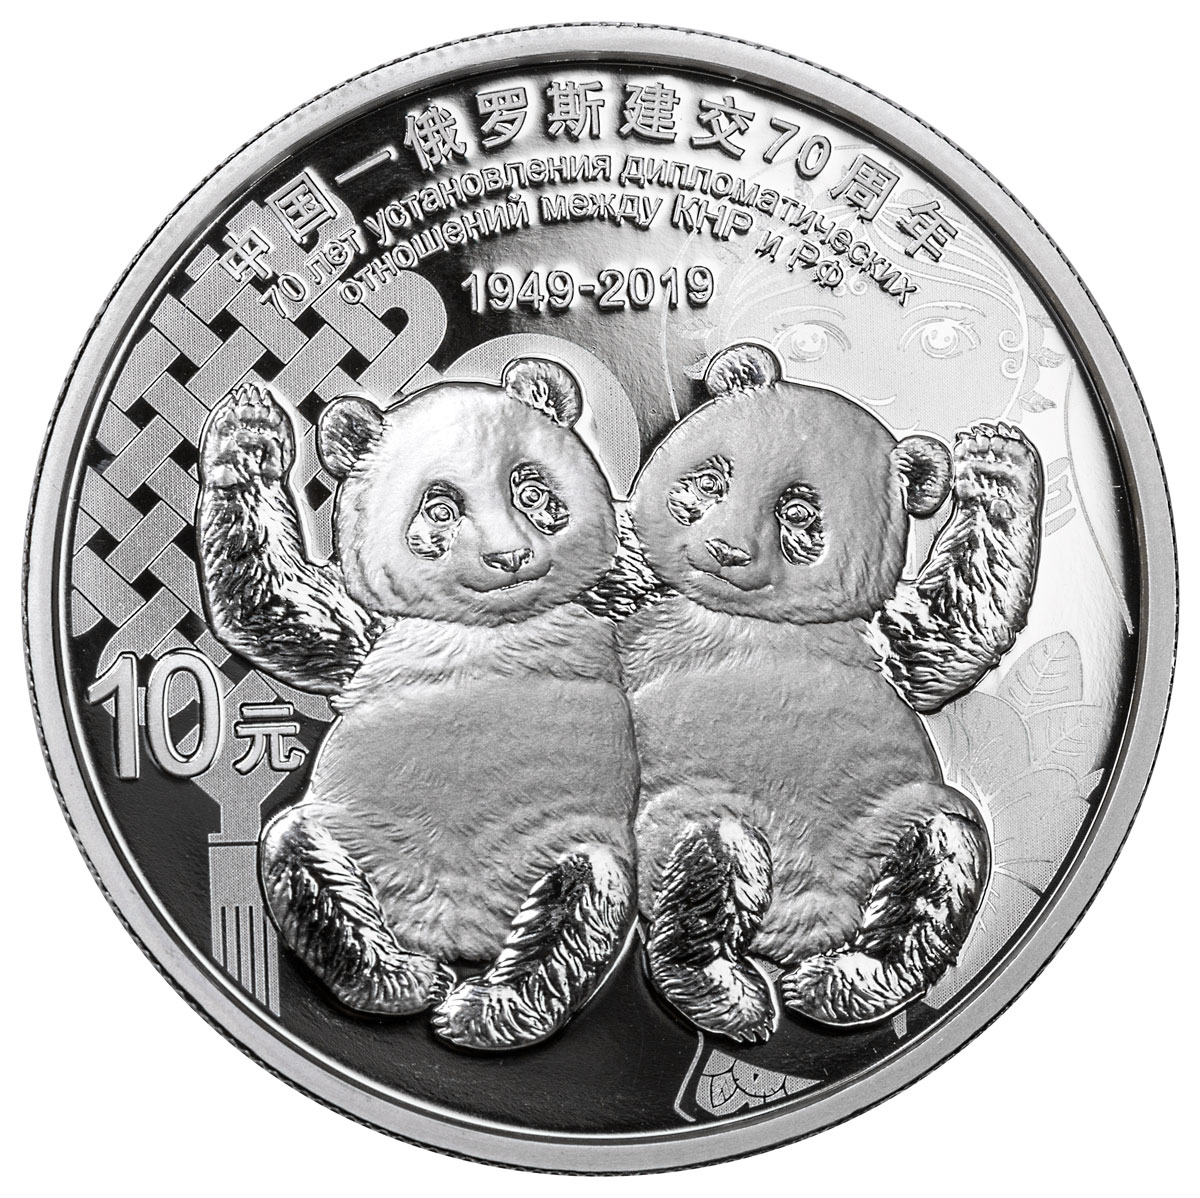 2019 China Sino-Russian Diplomatic Relations - 70th Anniversary 30 g Silver Proof ¥10 Coin GEM Proof Original Mint Box with COA